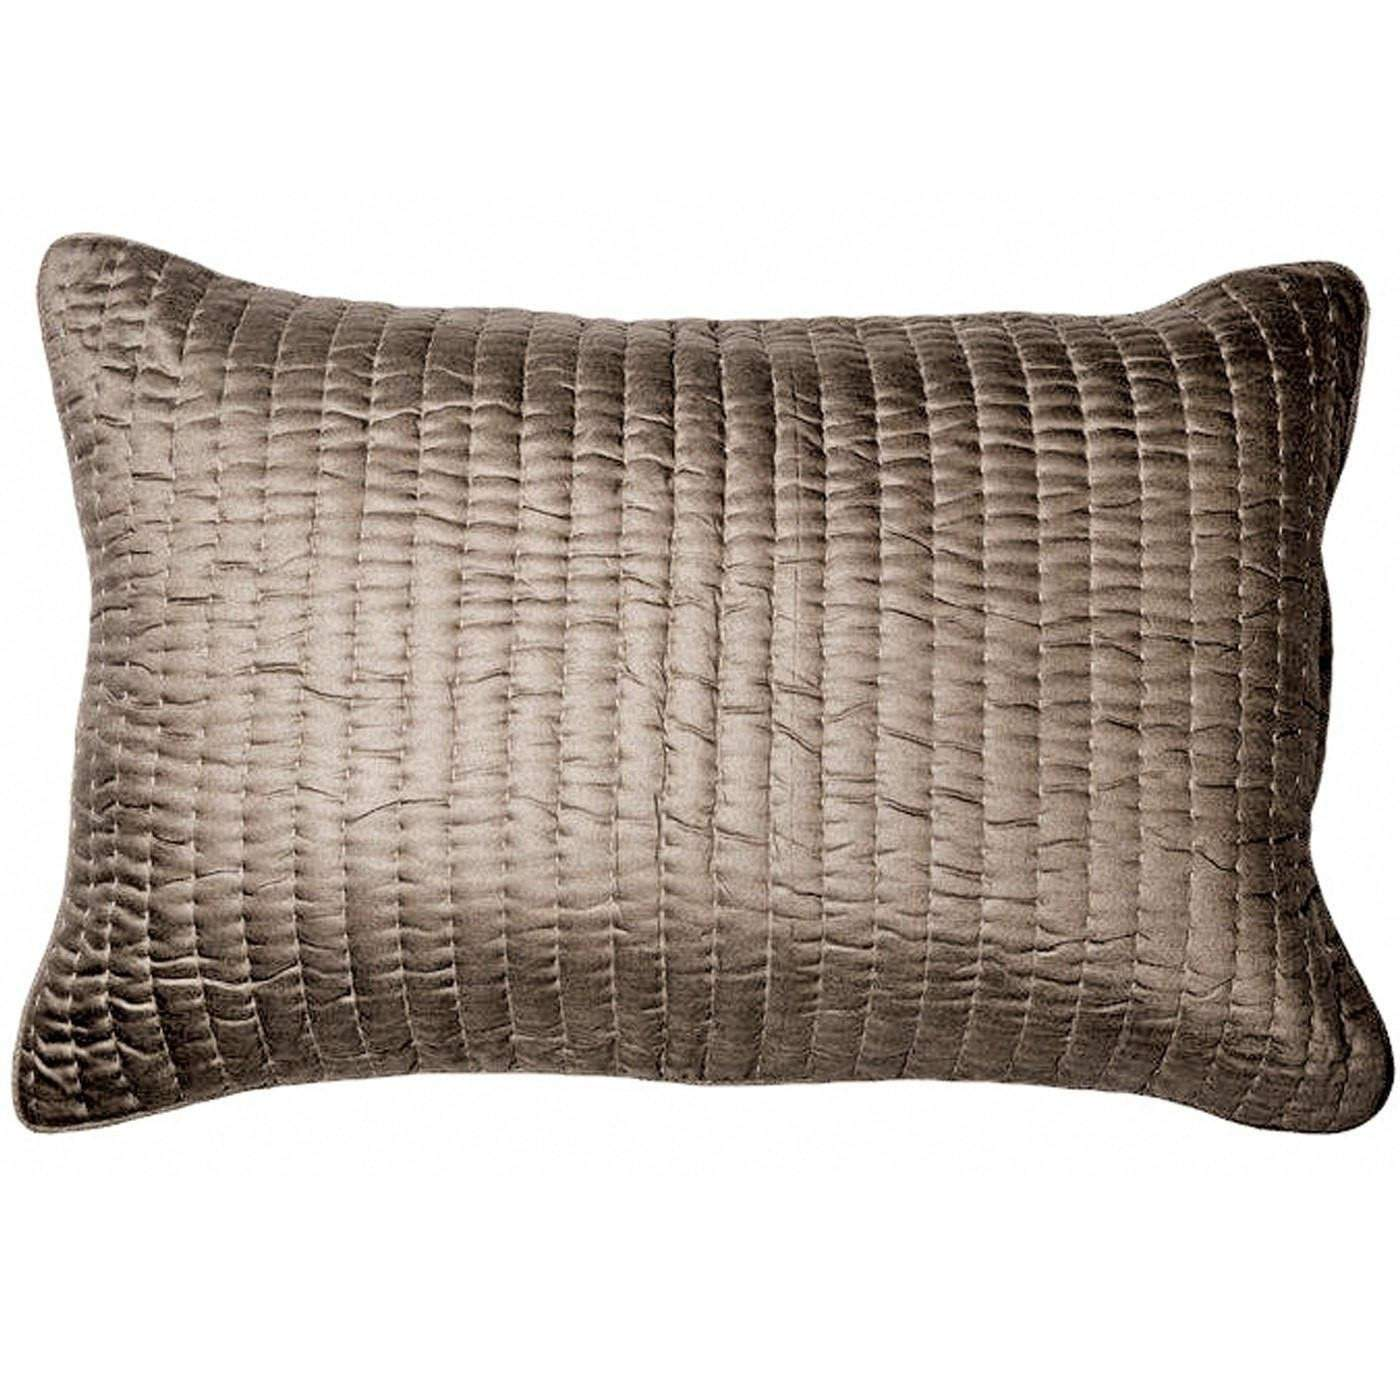 Bandhini Homewear Design Sham Cushion Beige / Primitive Tribe / 18 x 27 Gudri Titanium Sham Cushion 46x69cm